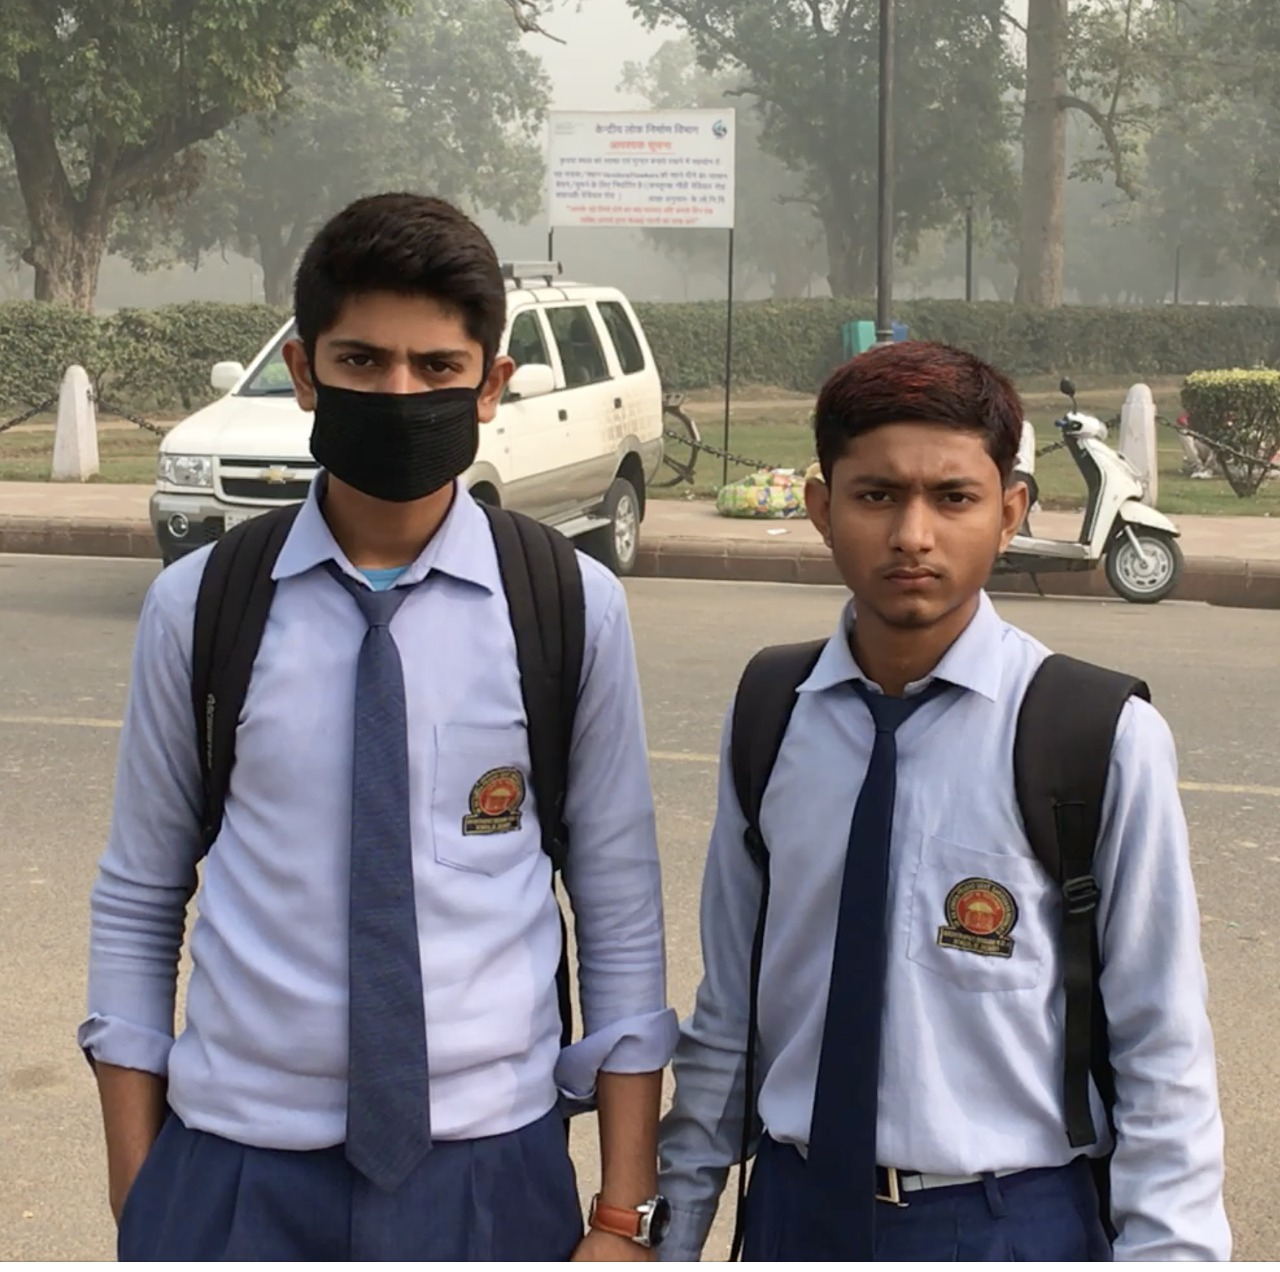 Cotton face mask are very popular across Delhi. But they are completely ineffective against the main cause of pollution-related sickness: PM2.5. Credit: Aabid Shafi